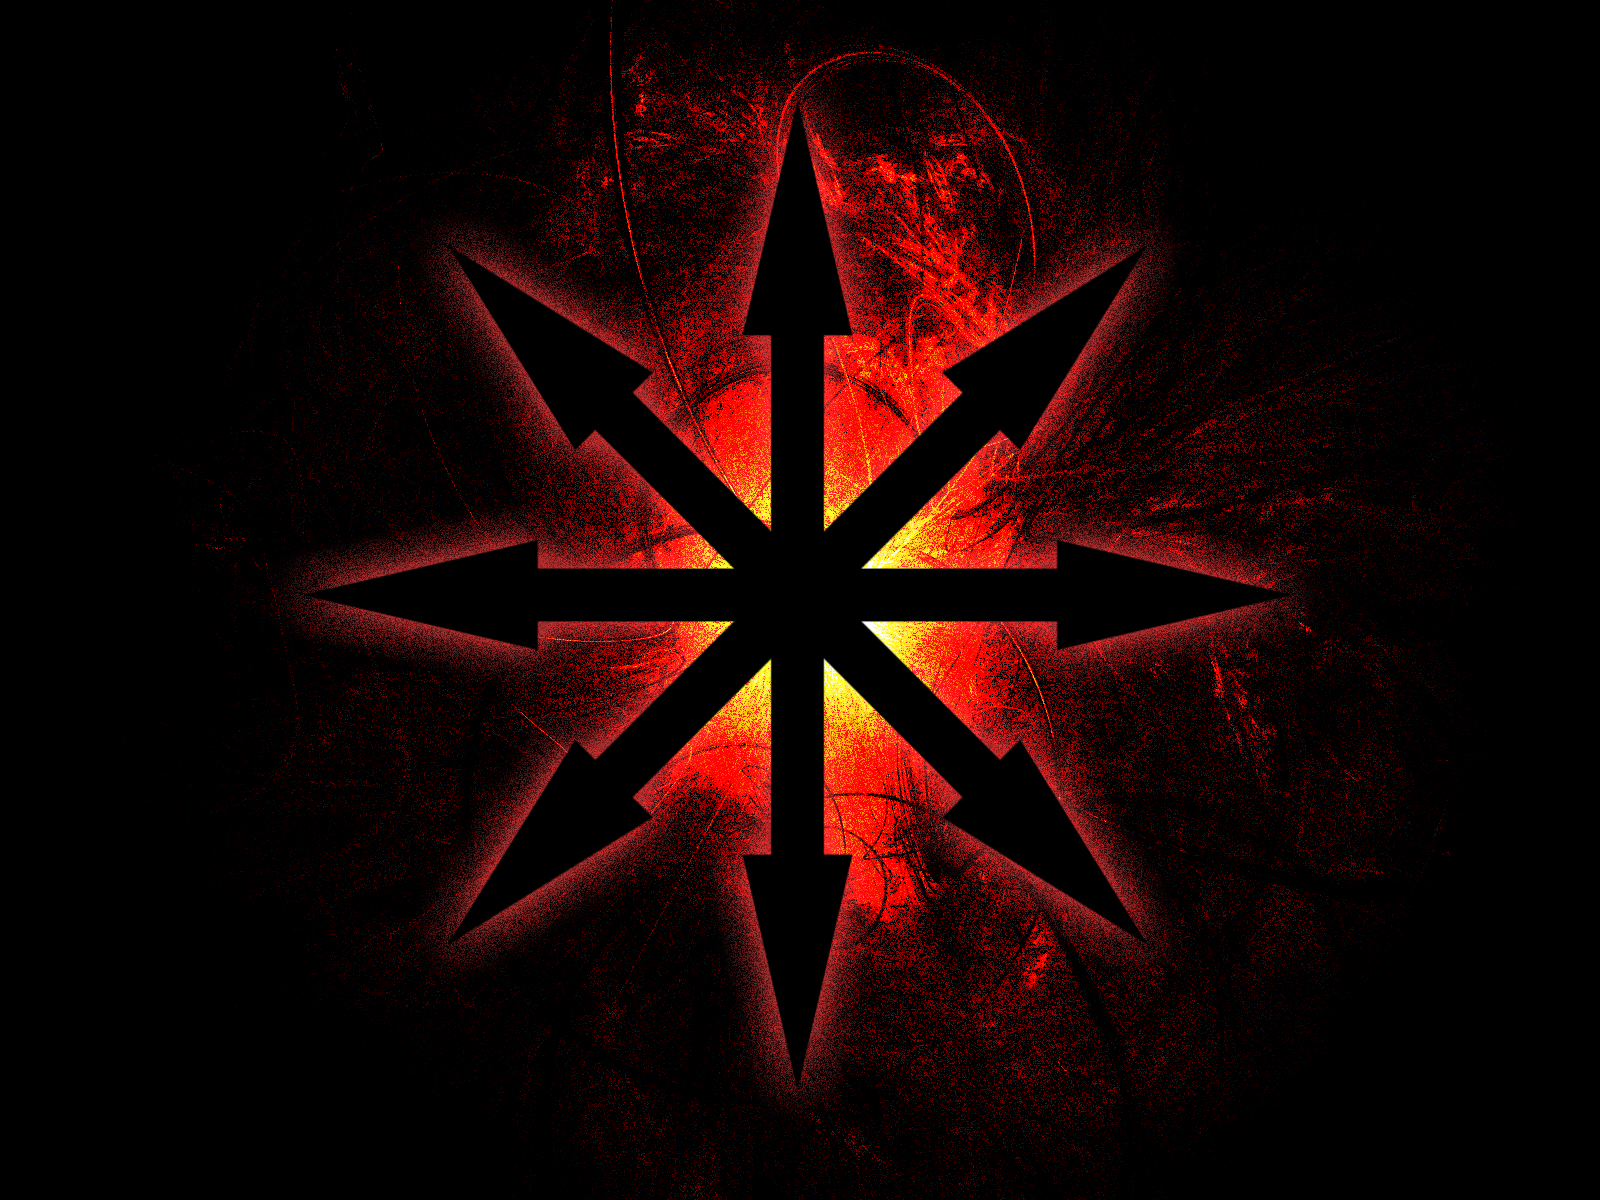 This image displays the chaosstar, which is a symbil for anti-cosmos or simply chaos